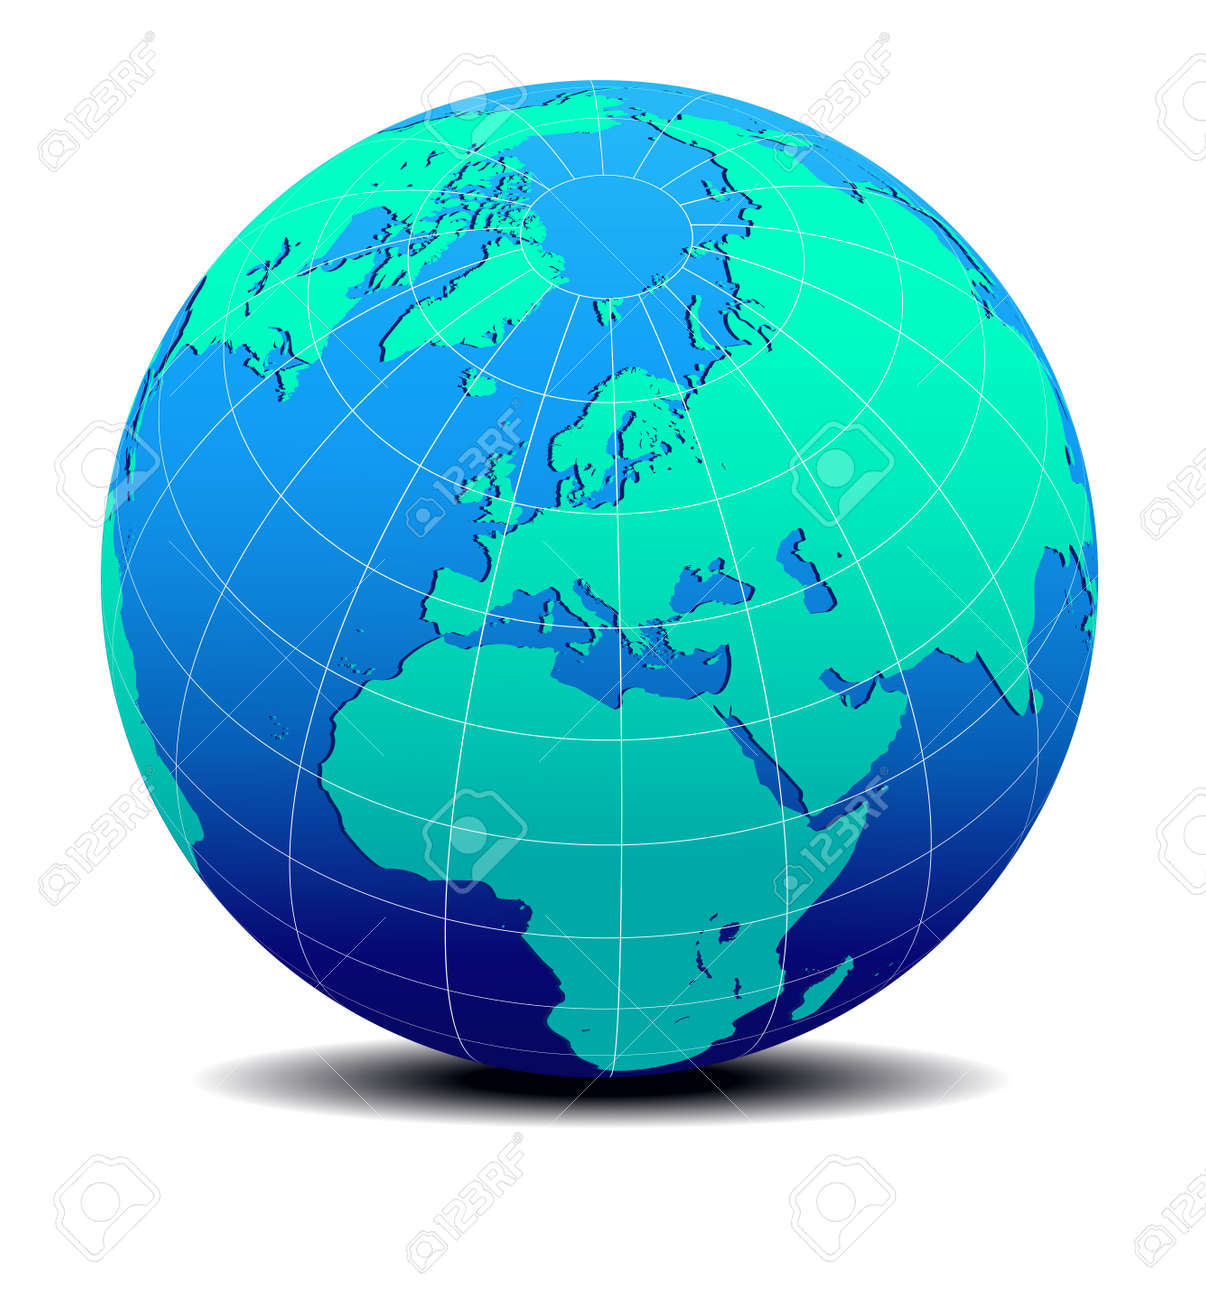 Europe and Africa, Global World Map on asia map, regional map, thematic map, mappa mundi, canada map, india map, topographic map, travel map, middle east map, costa rica map, china map, africa map, europe map, united kingdom map, globe map, antarctica map, google map, korea map, world map, european map, usa map, brazil map, australia map,